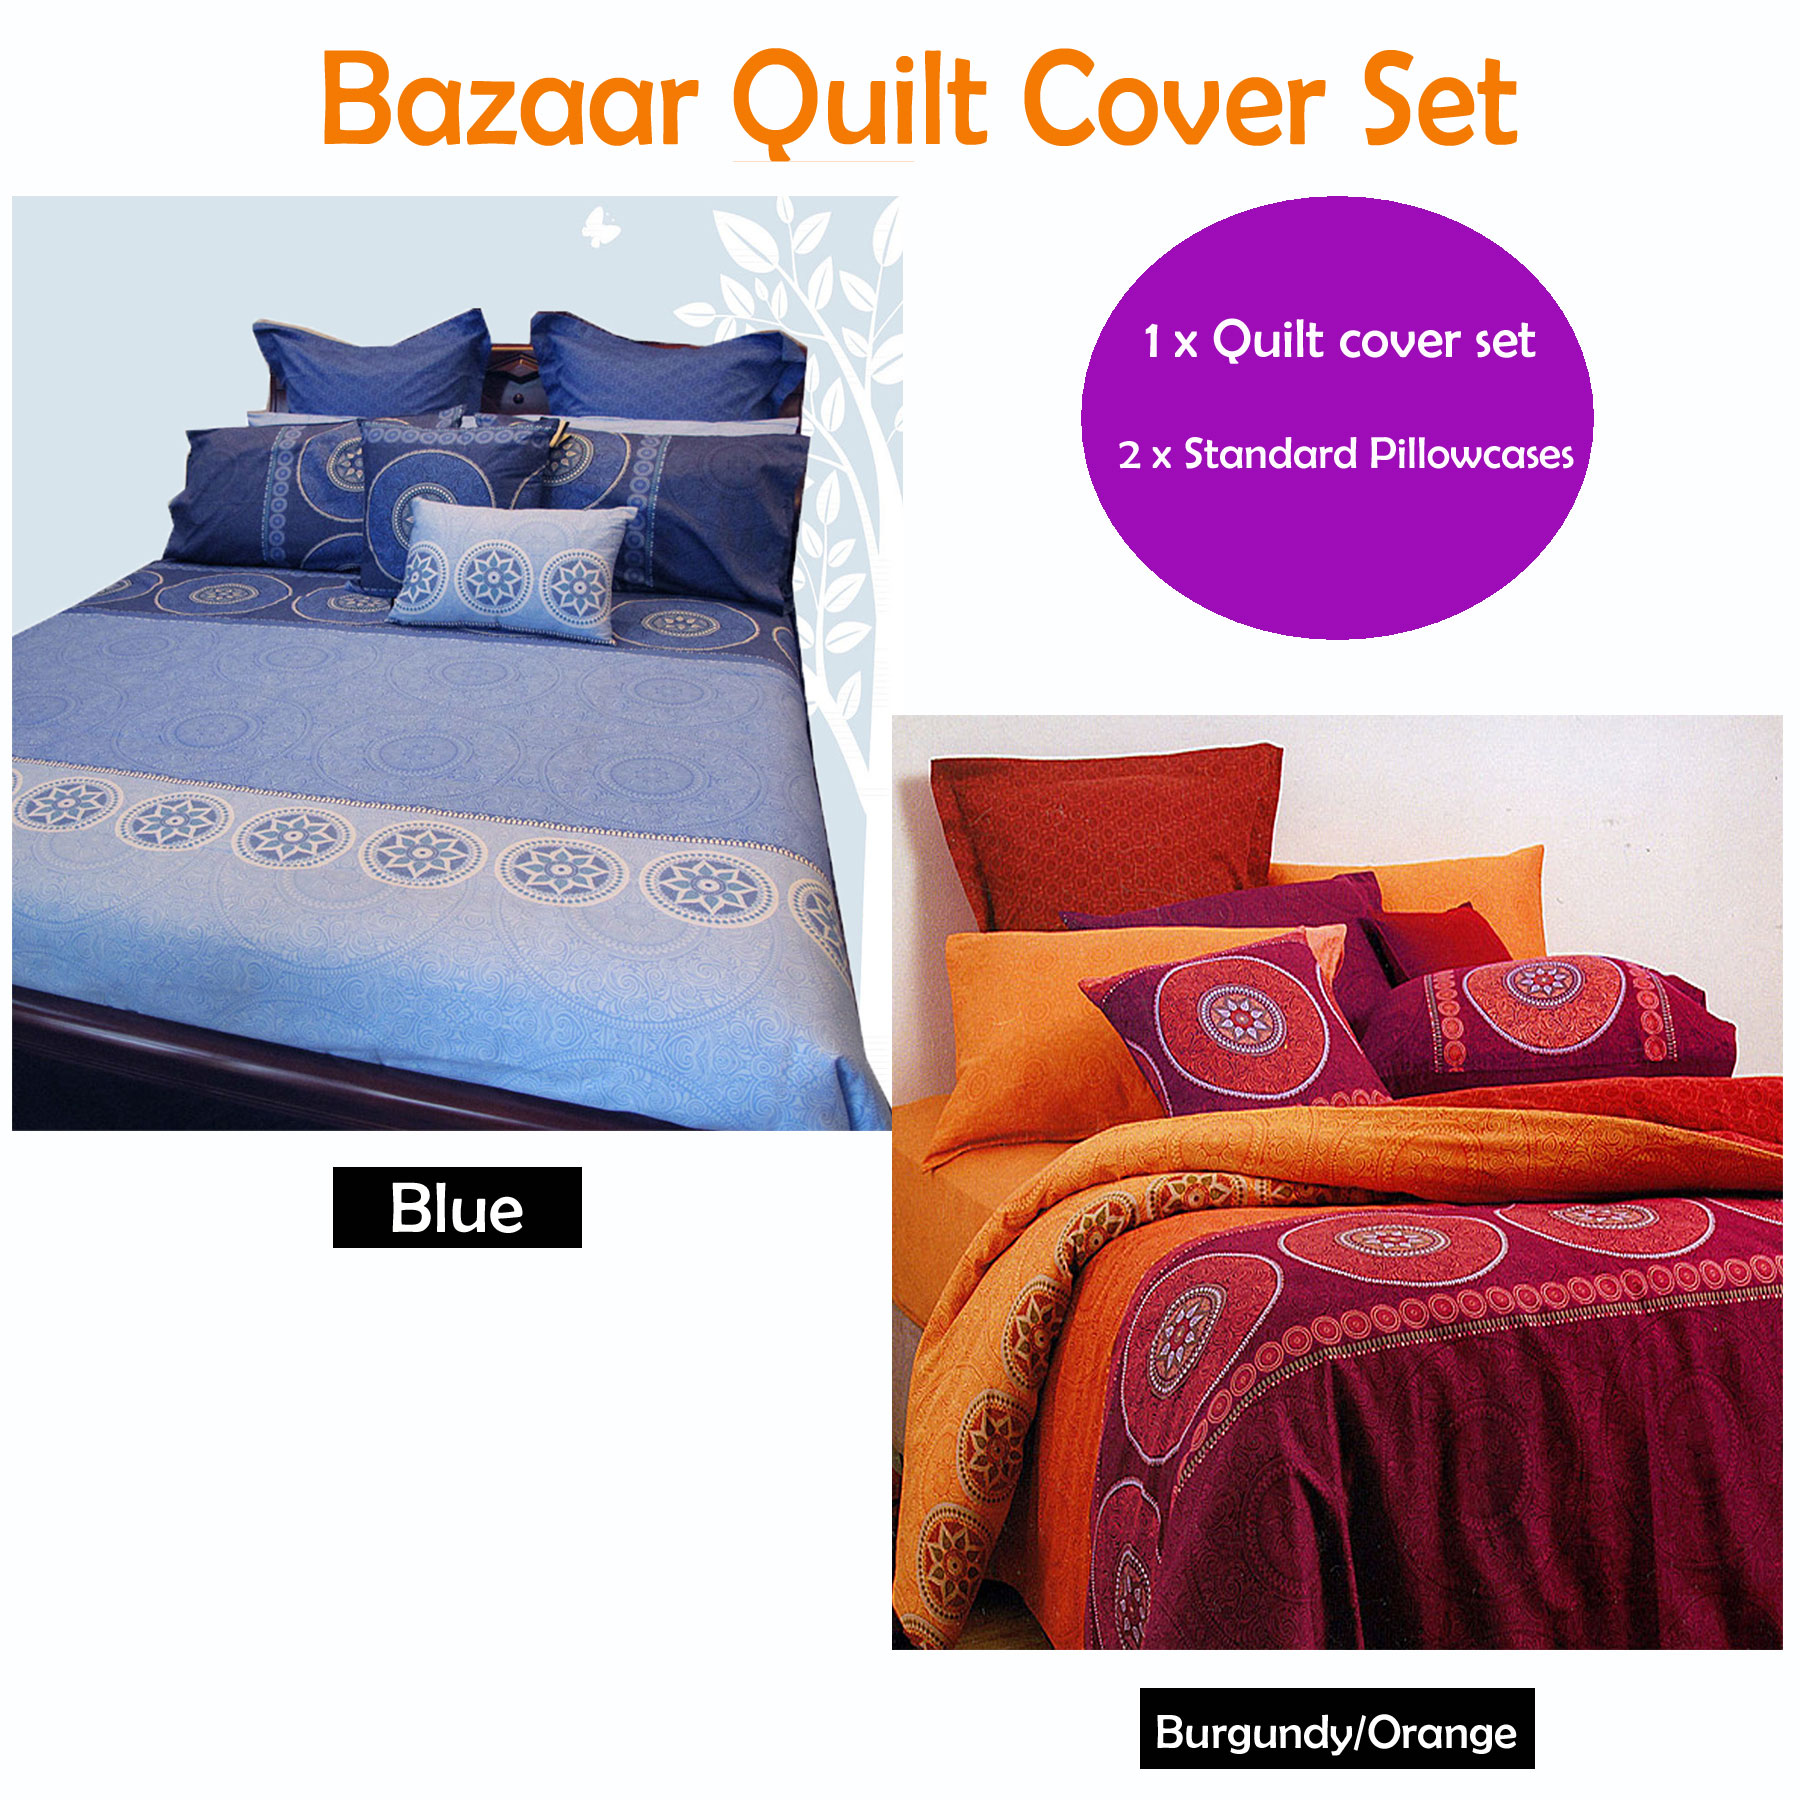 100-Cotton-BAZAAR-Quilt-Cover-Set-Eurocases-Cushion-SINGLE-DOUBLE-QUEEN-KING